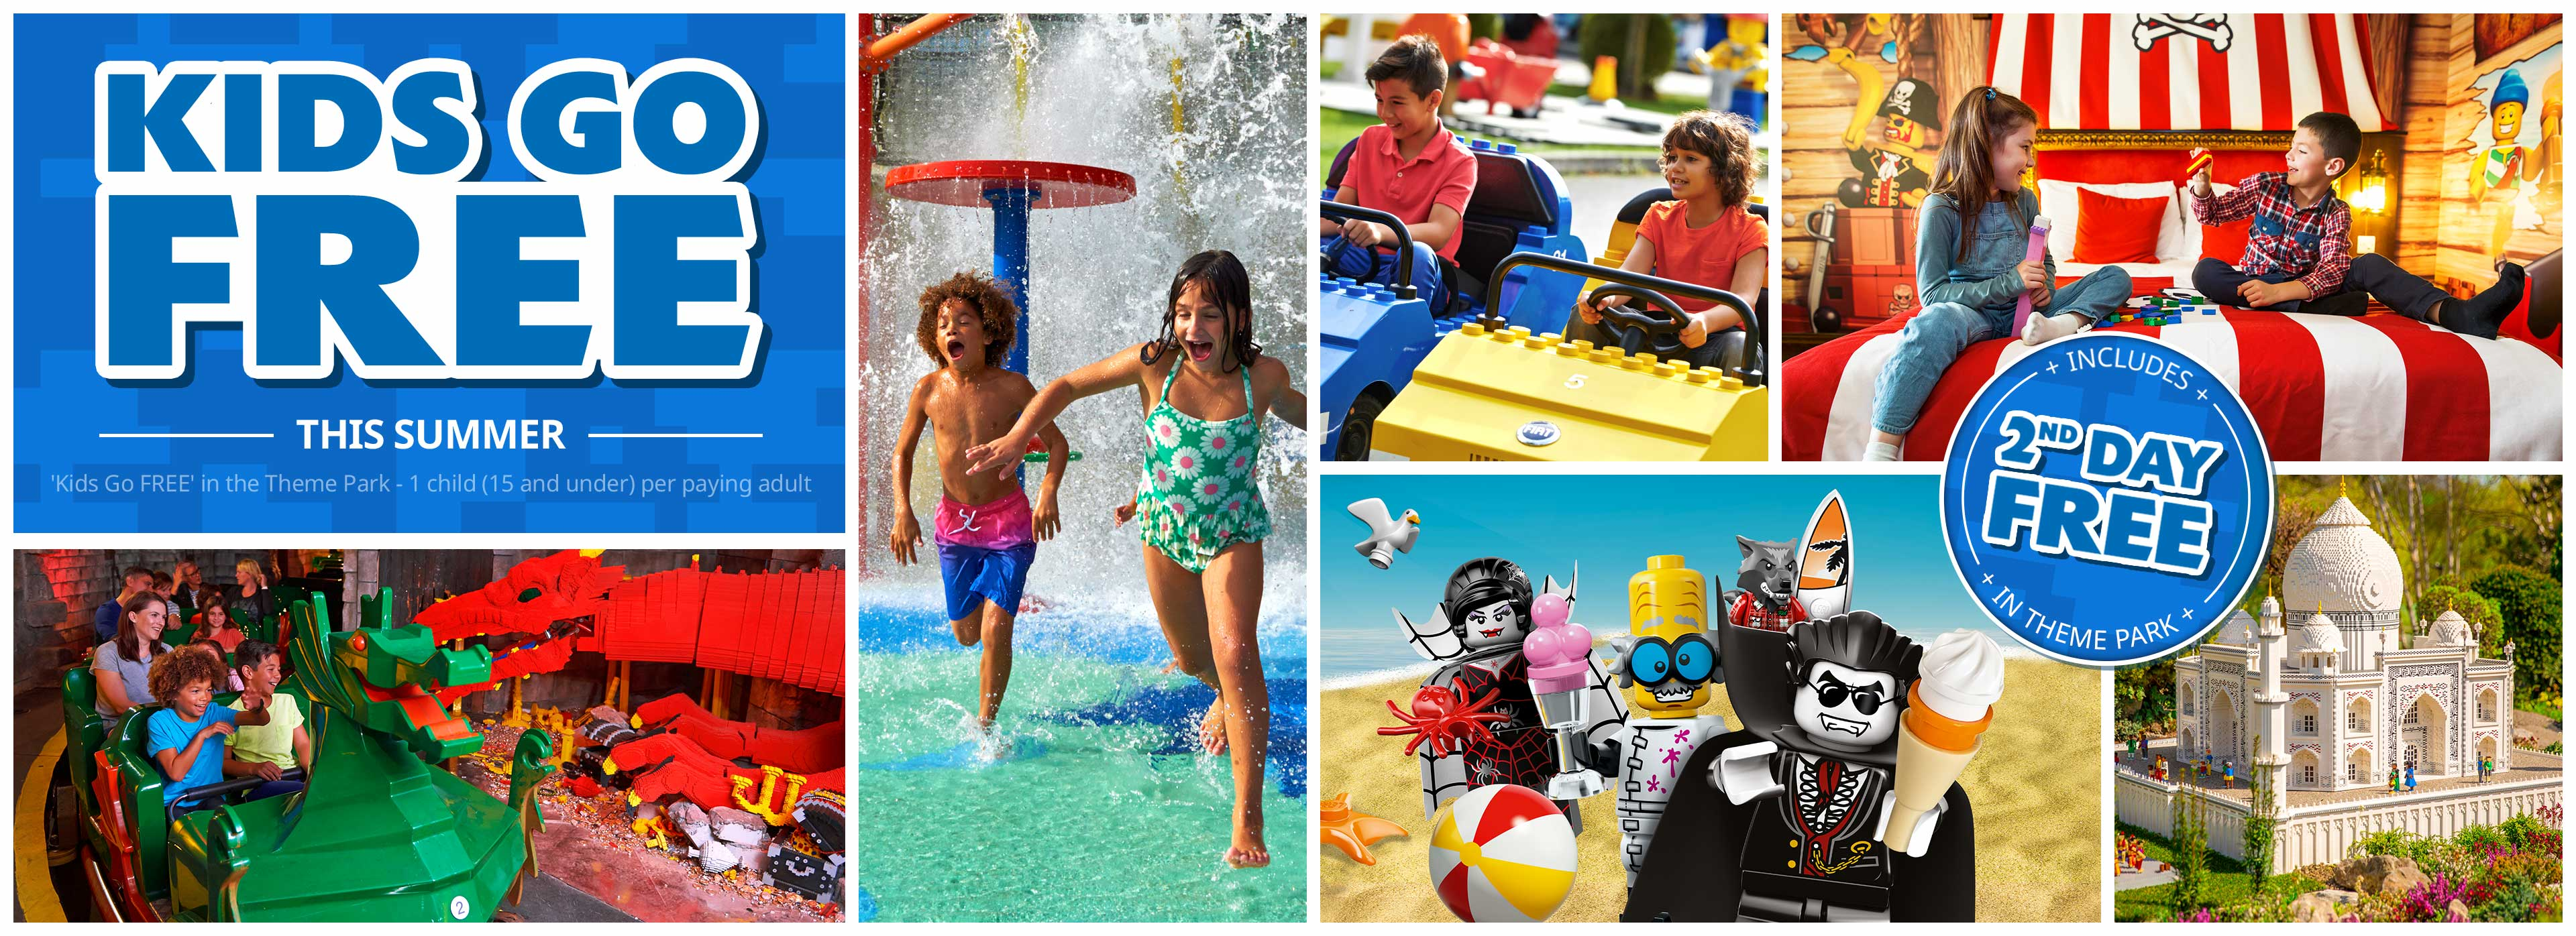 Kids Go FREE with LEGOLAND Holidays